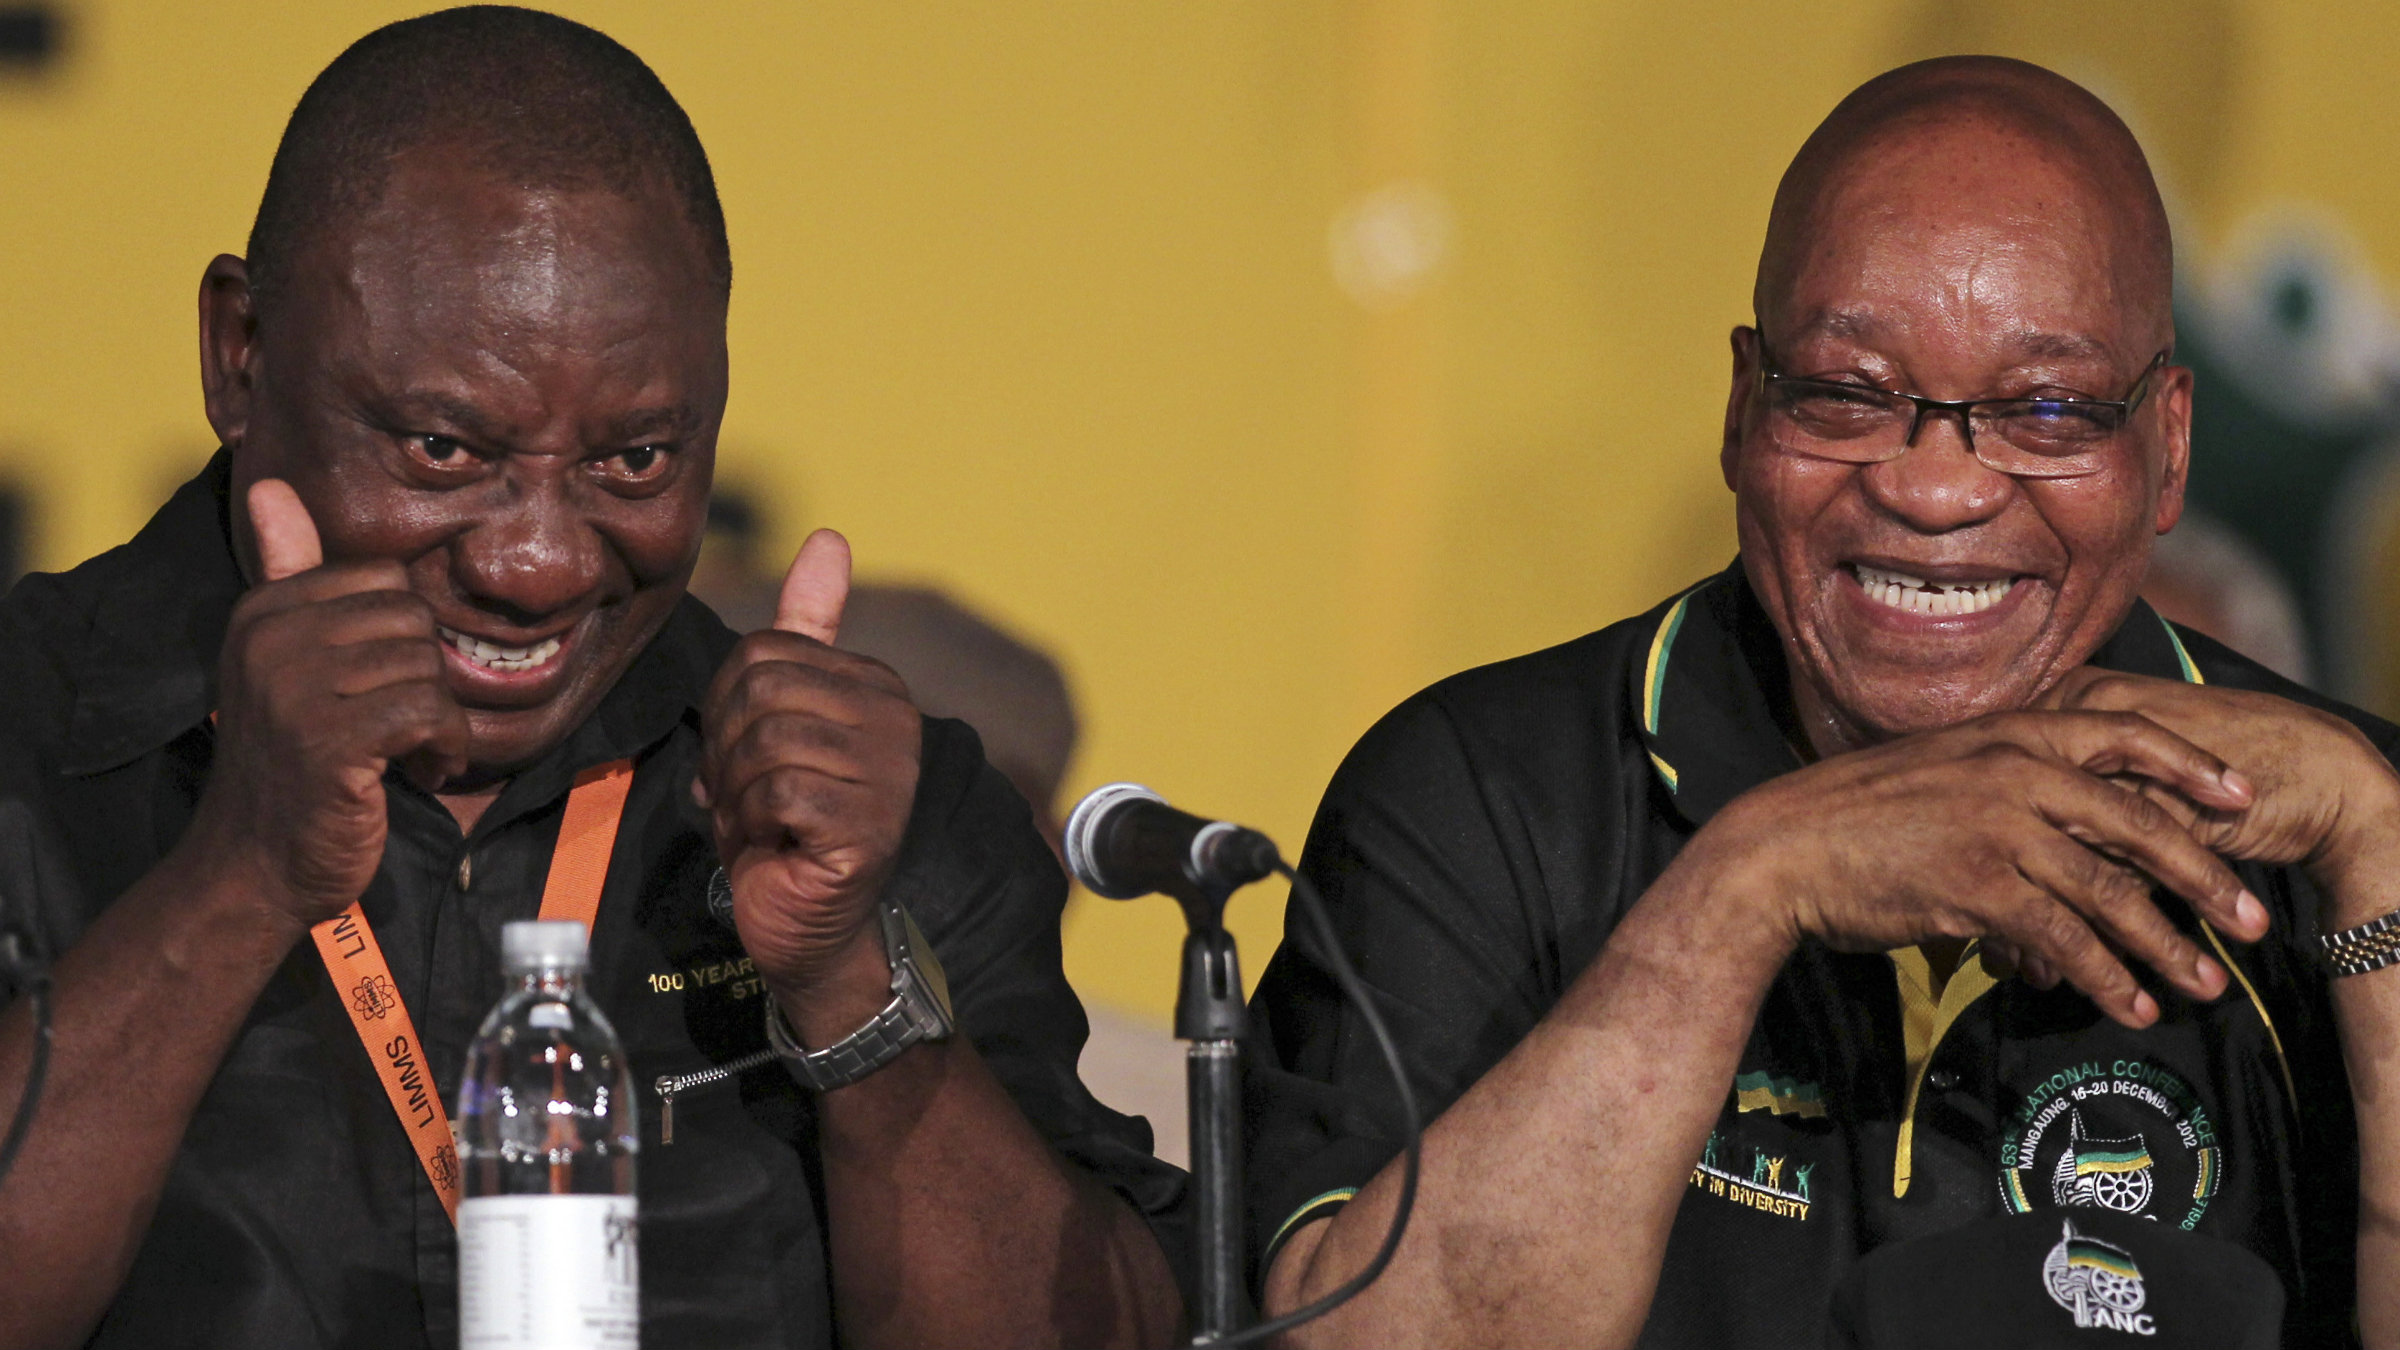 Cyril Ramaphosa, left, with South African President Jacob Zuma. Critics say he should have better supported miners during a violent, deadly strike earlier this year.